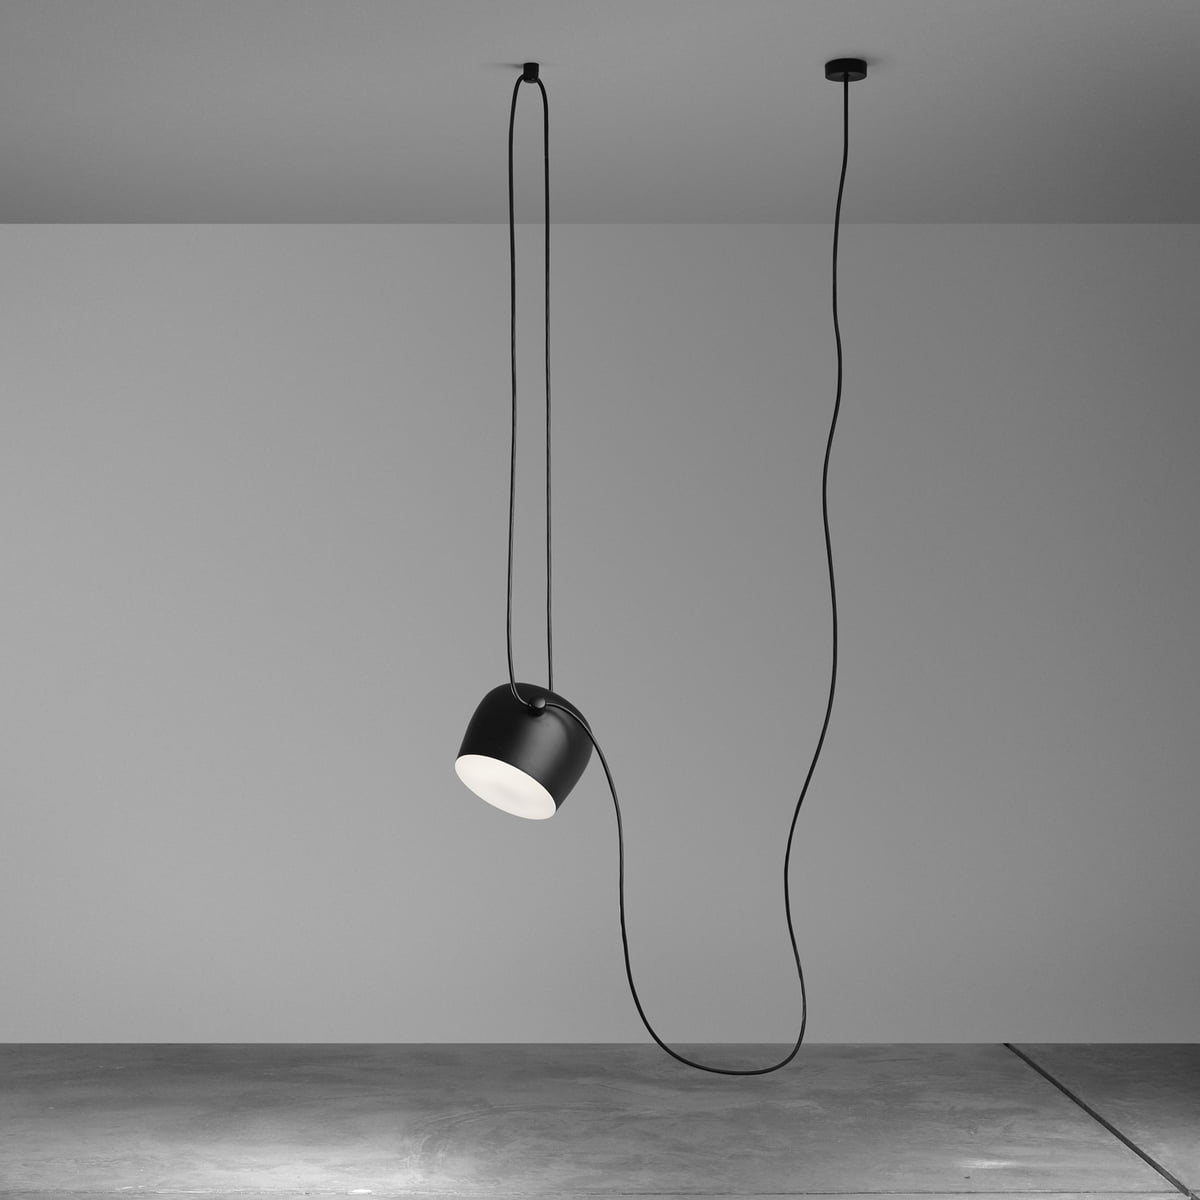 flos aim small led pendant lamp. Black Bedroom Furniture Sets. Home Design Ideas